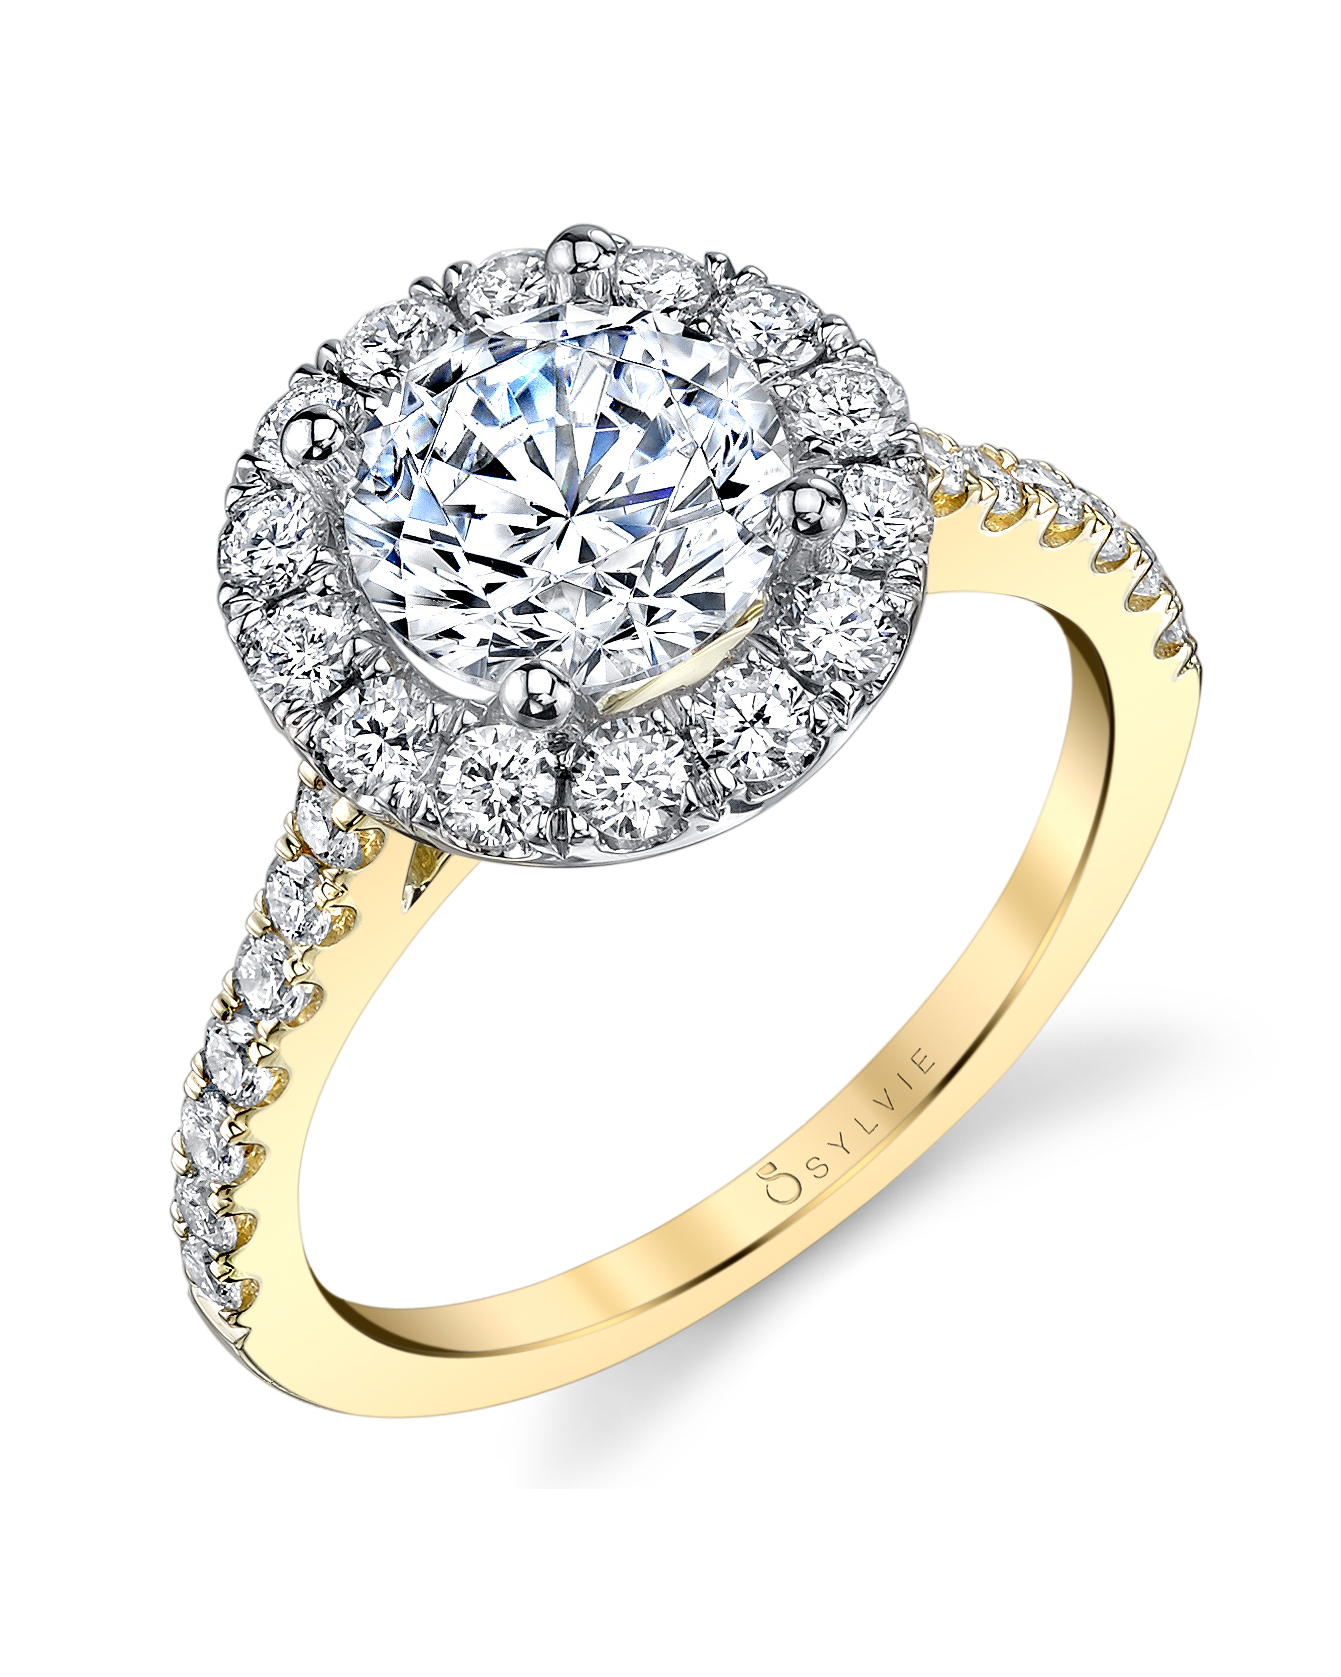 sylvie-collection-two-tone-yellow-gold-engagement-ring-brilliant-round-center-stone-0816.jpg